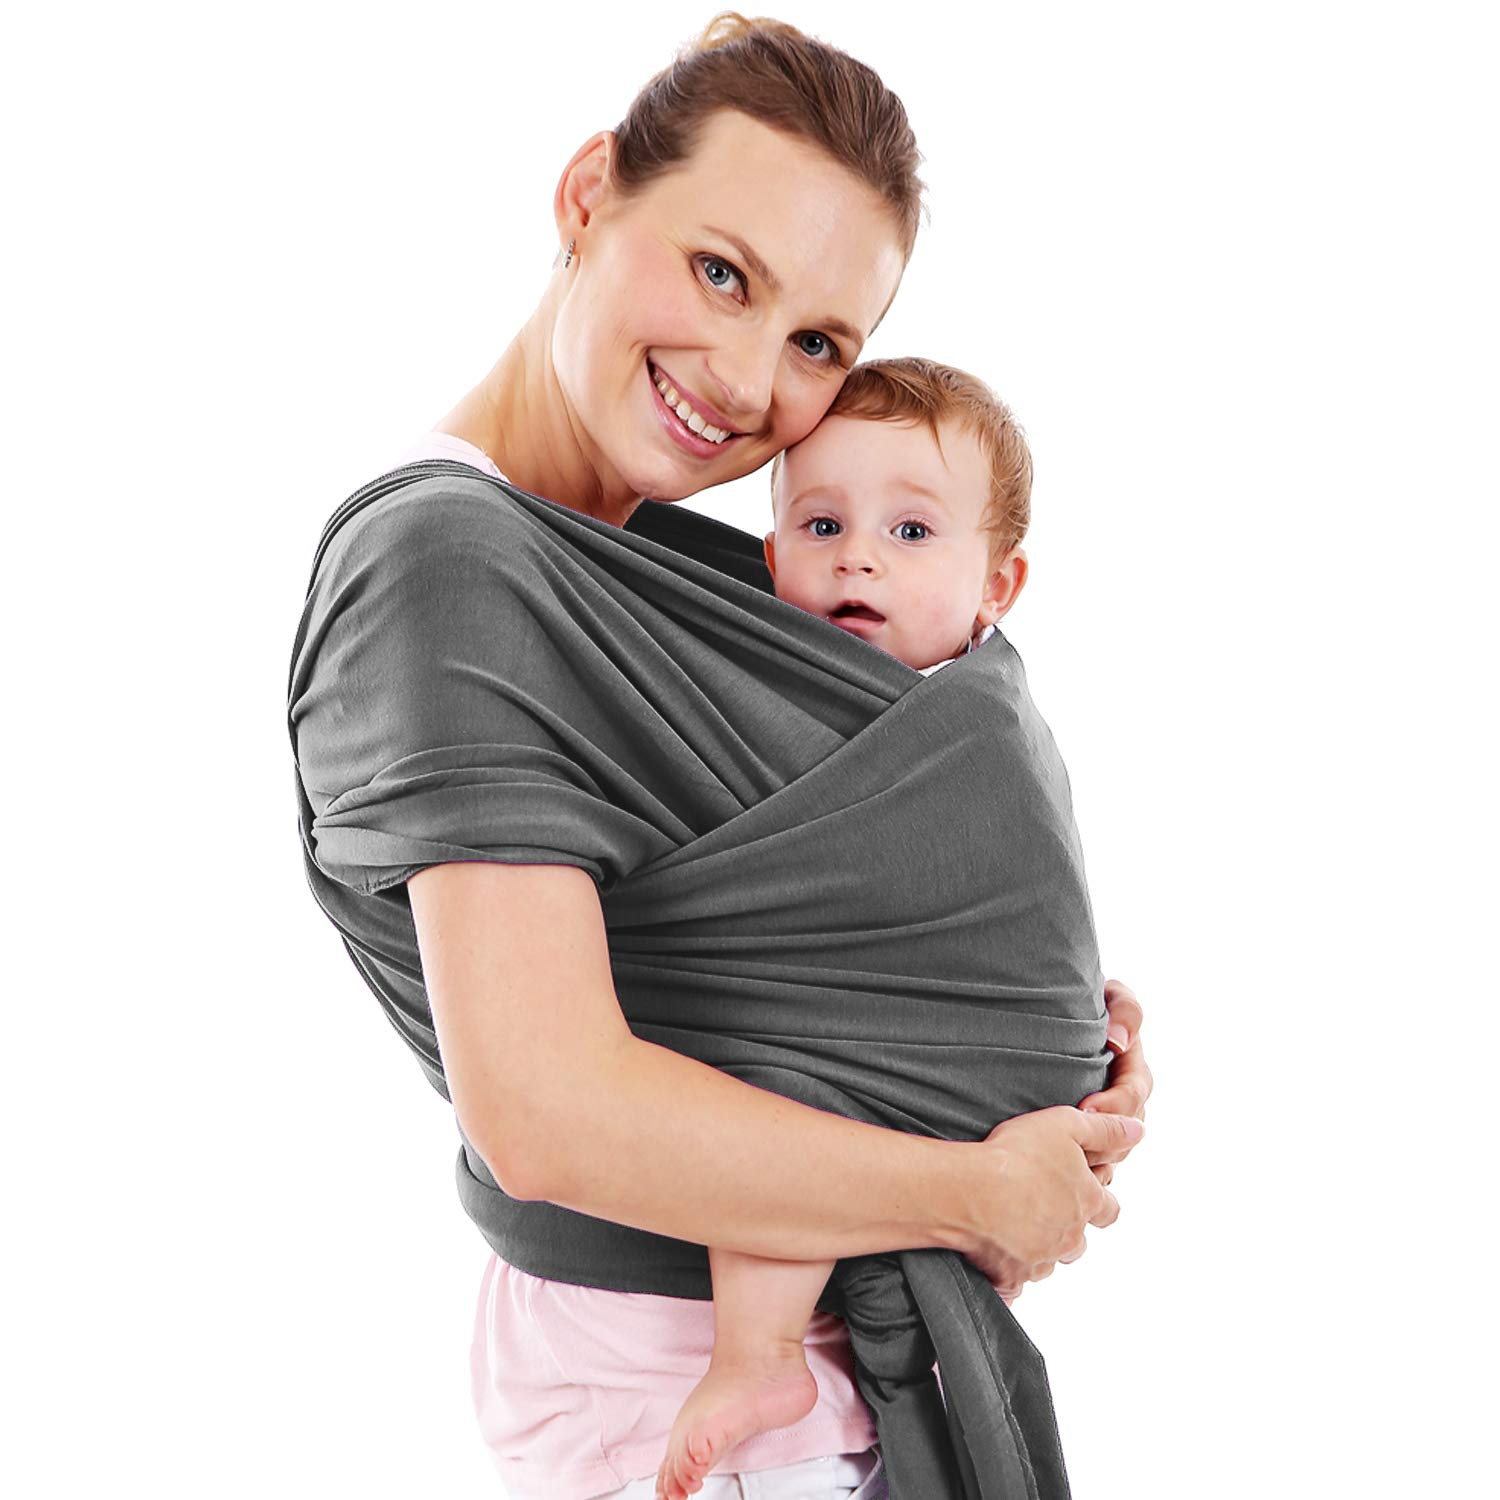 Zooawa Baby Wrap Carrier, Extra Soft Stretch Cotton Baby Carrier Sling and Wraps for Newborn, Breathable & Comfortable, Heather Grey